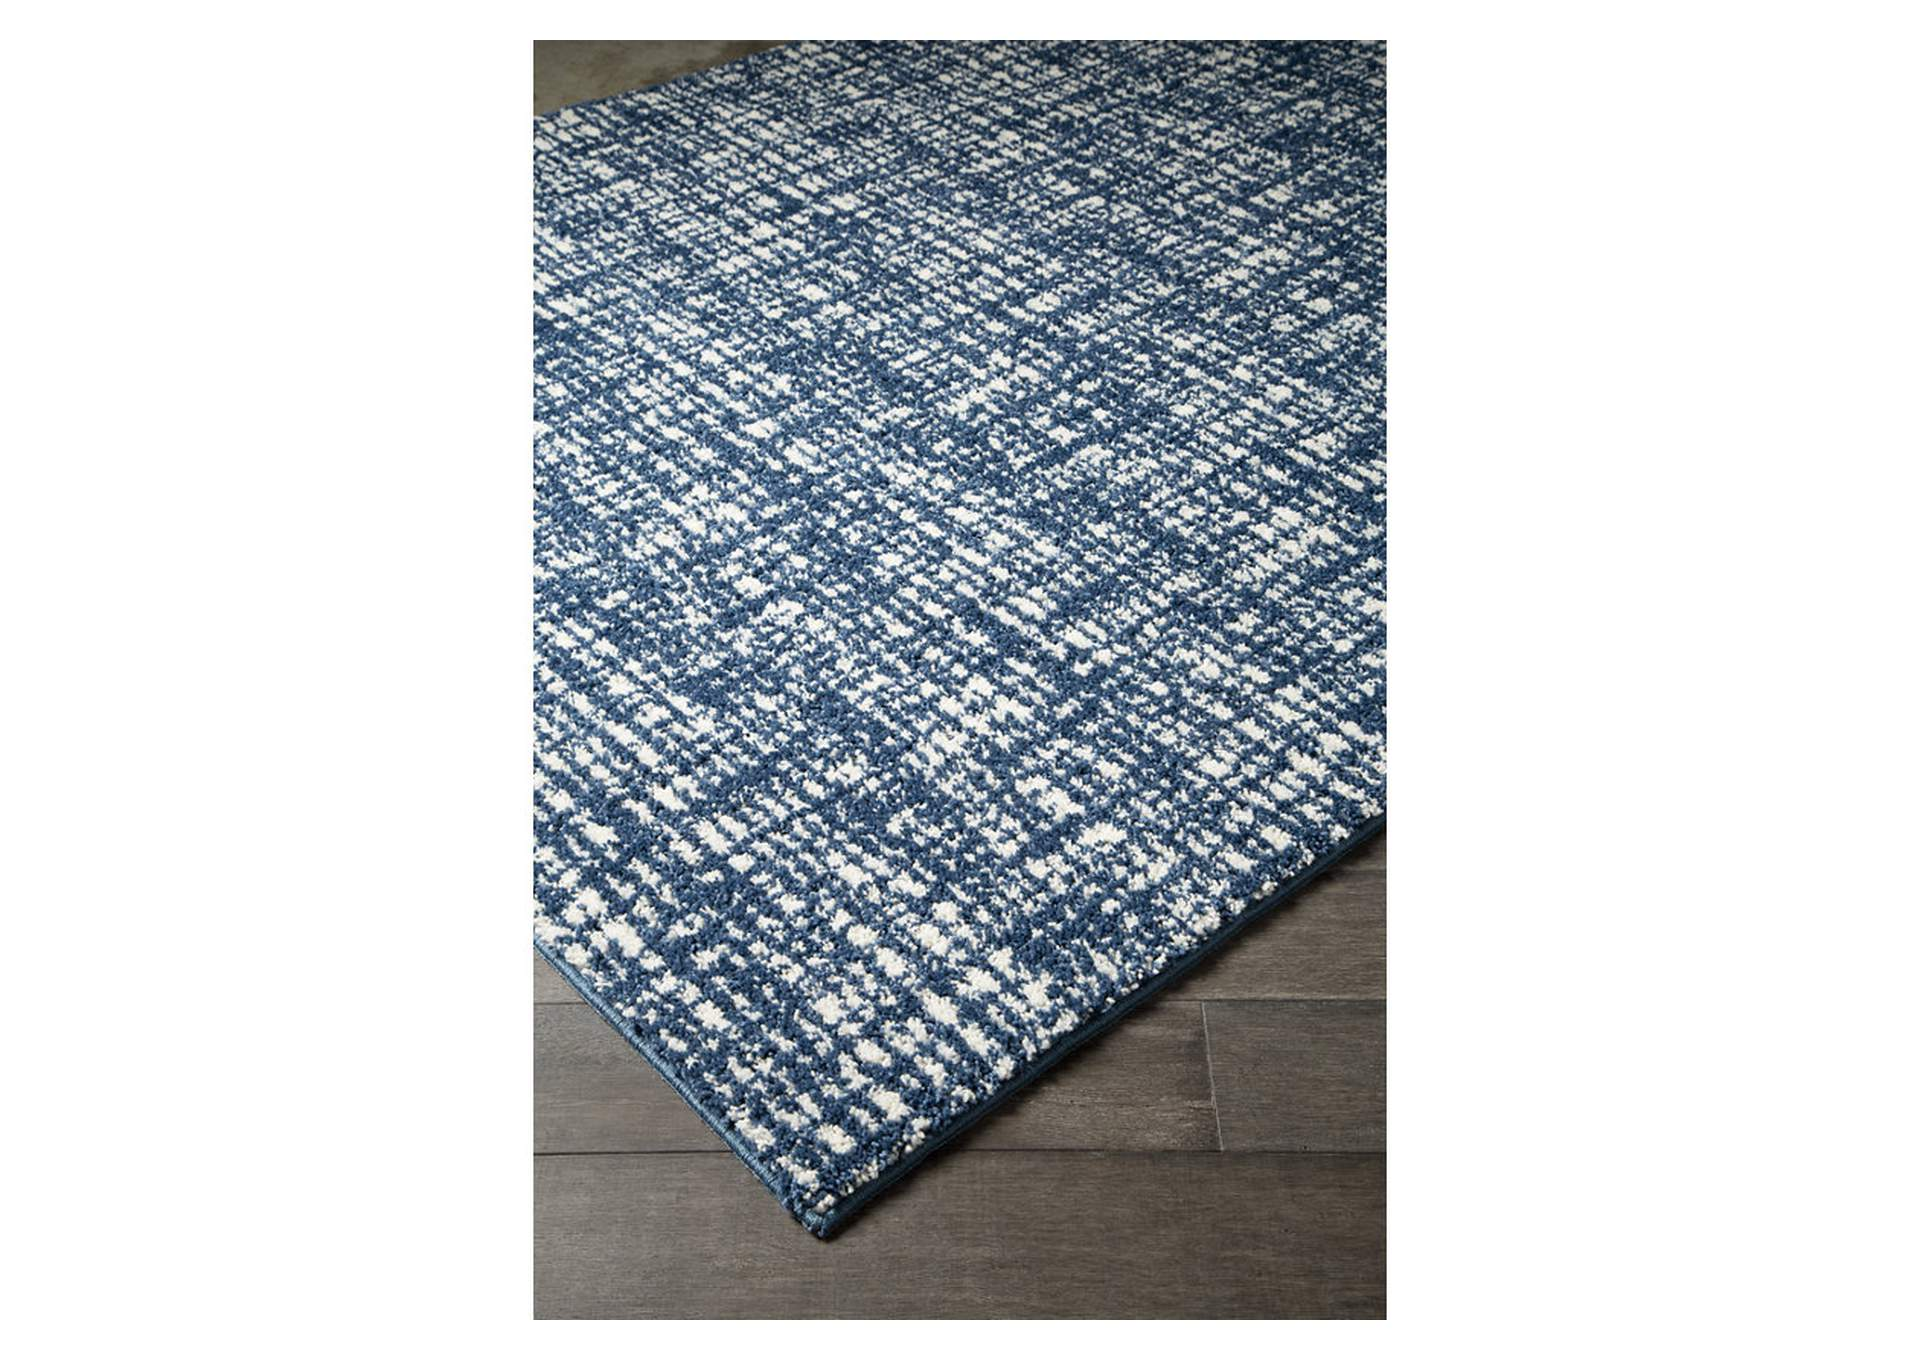 Norris Blue/White Medium Rug,Direct To Consumer Express